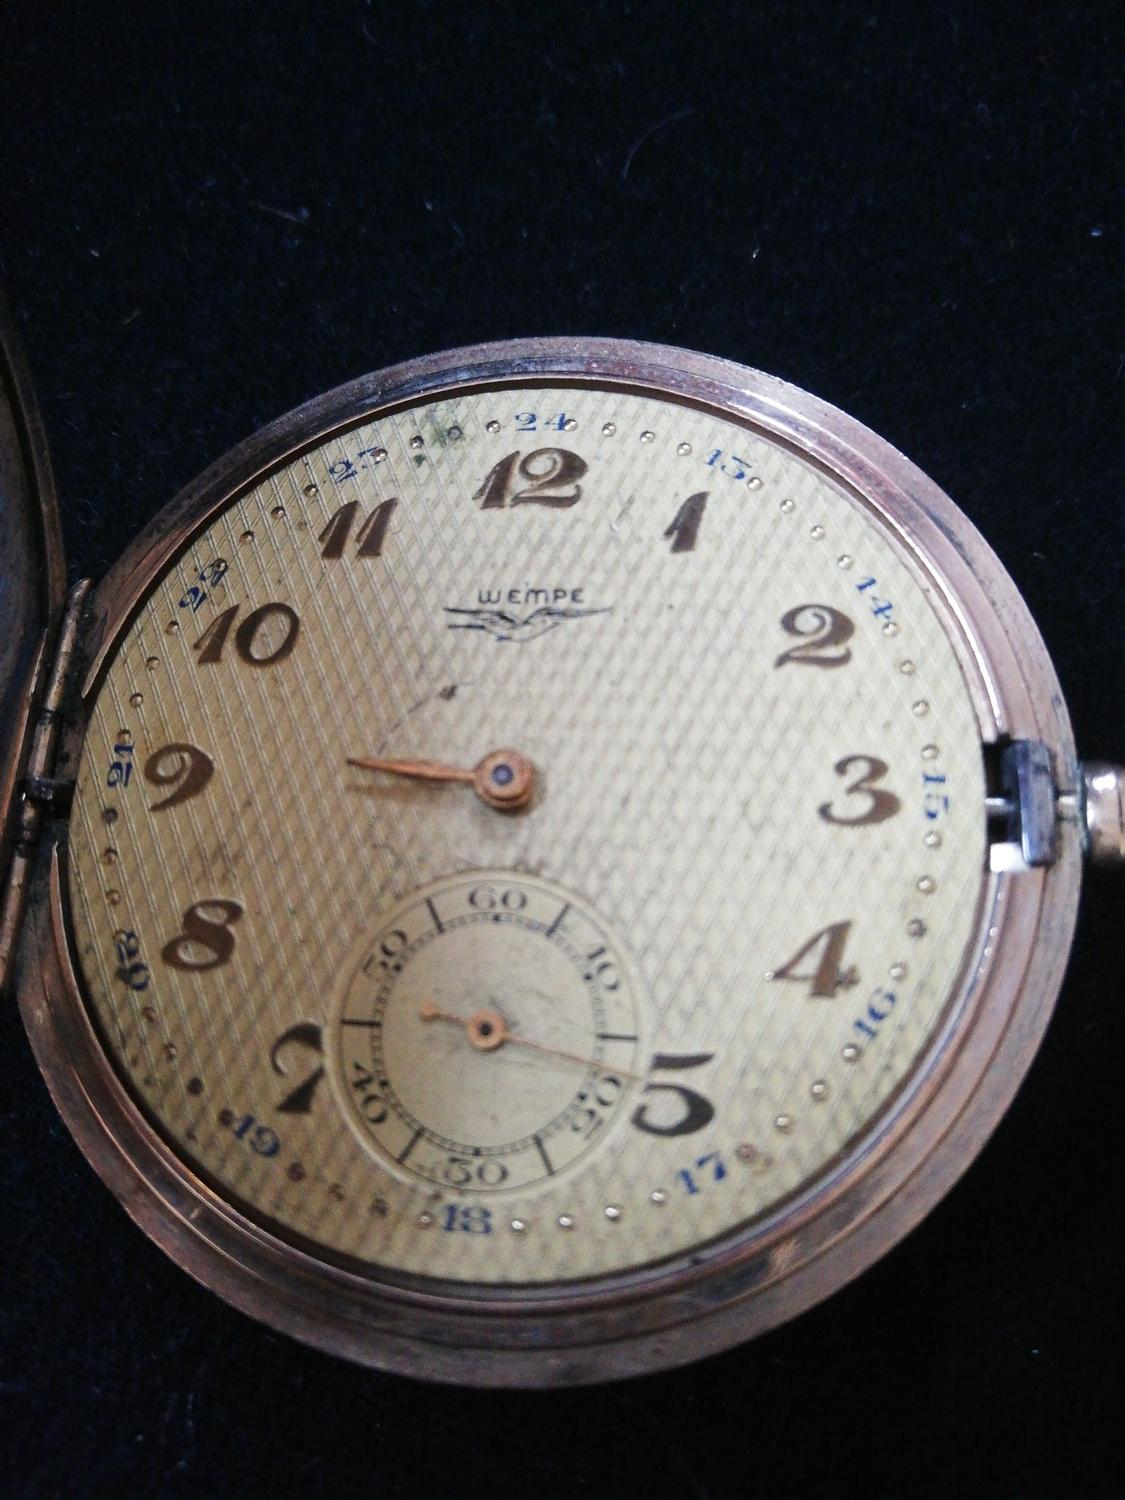 Gold plated German pocket watch by Wempe -a/f running order but lacking minute hand & glass - Image 2 of 3